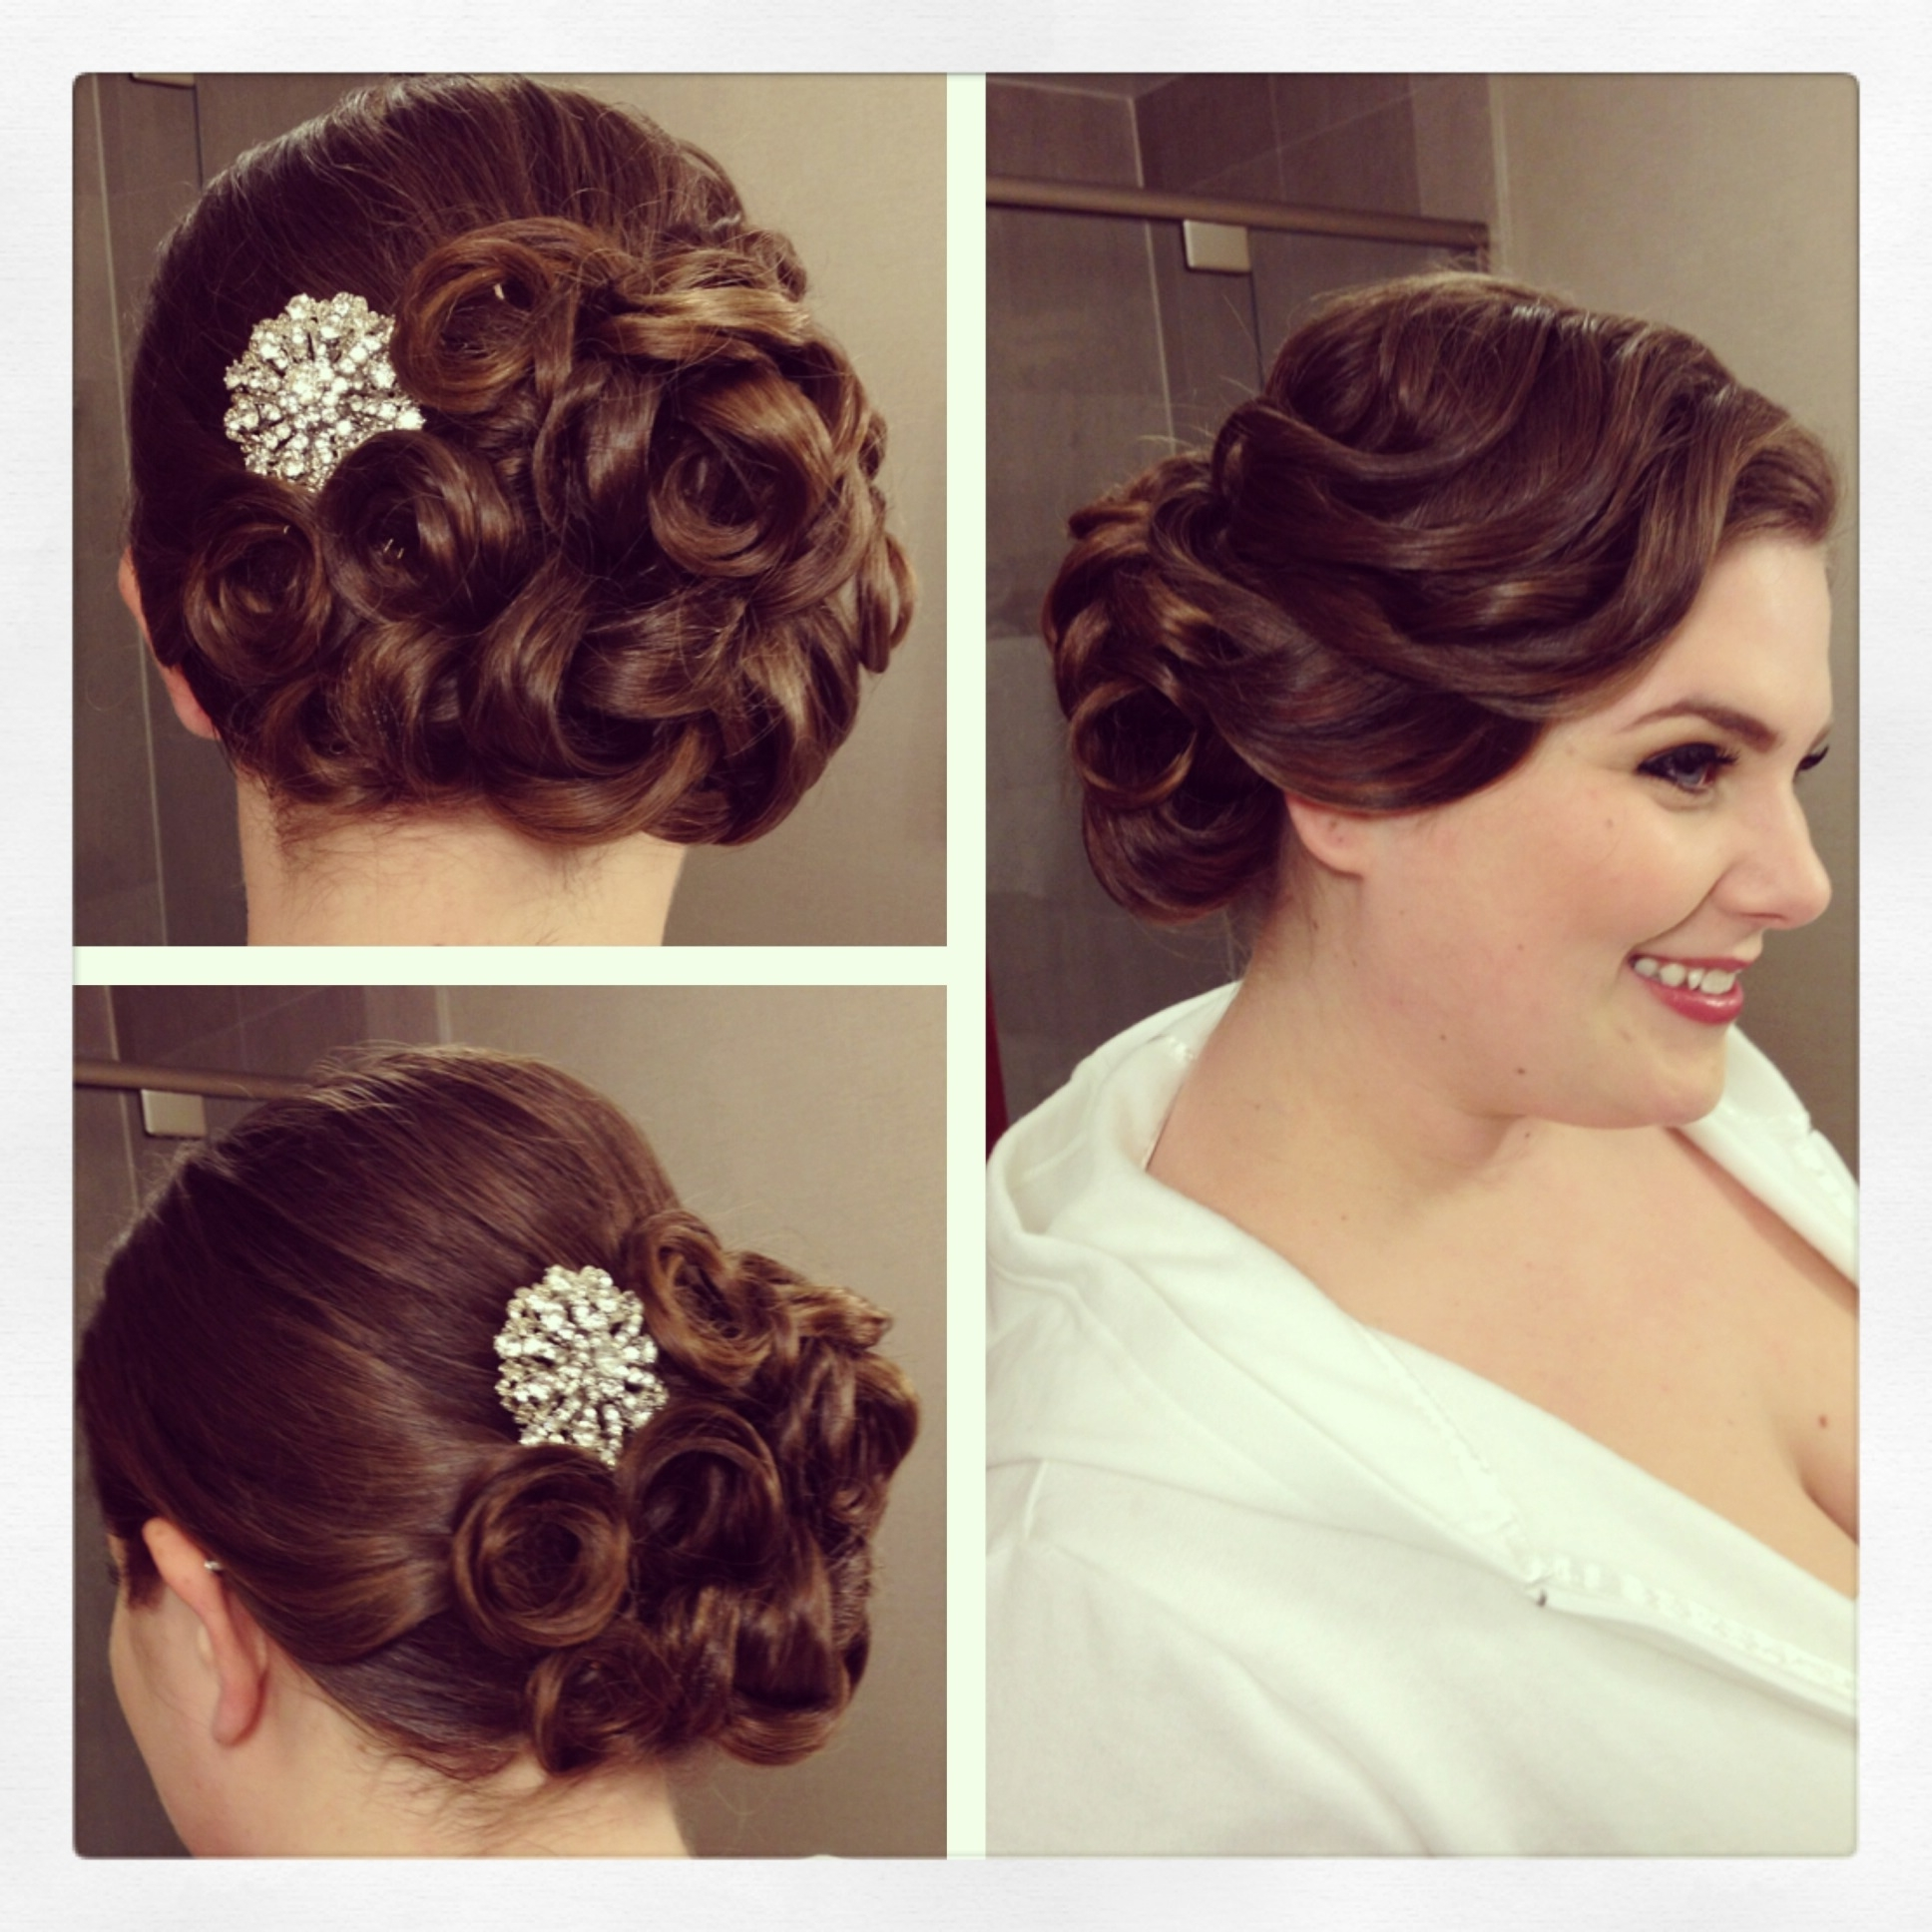 Inspiration Brides Updo Hairstyles In Vintage Side Updo Vintage With Regard To Wedding Hair Updo Hairstyles (Gallery 7 of 15)